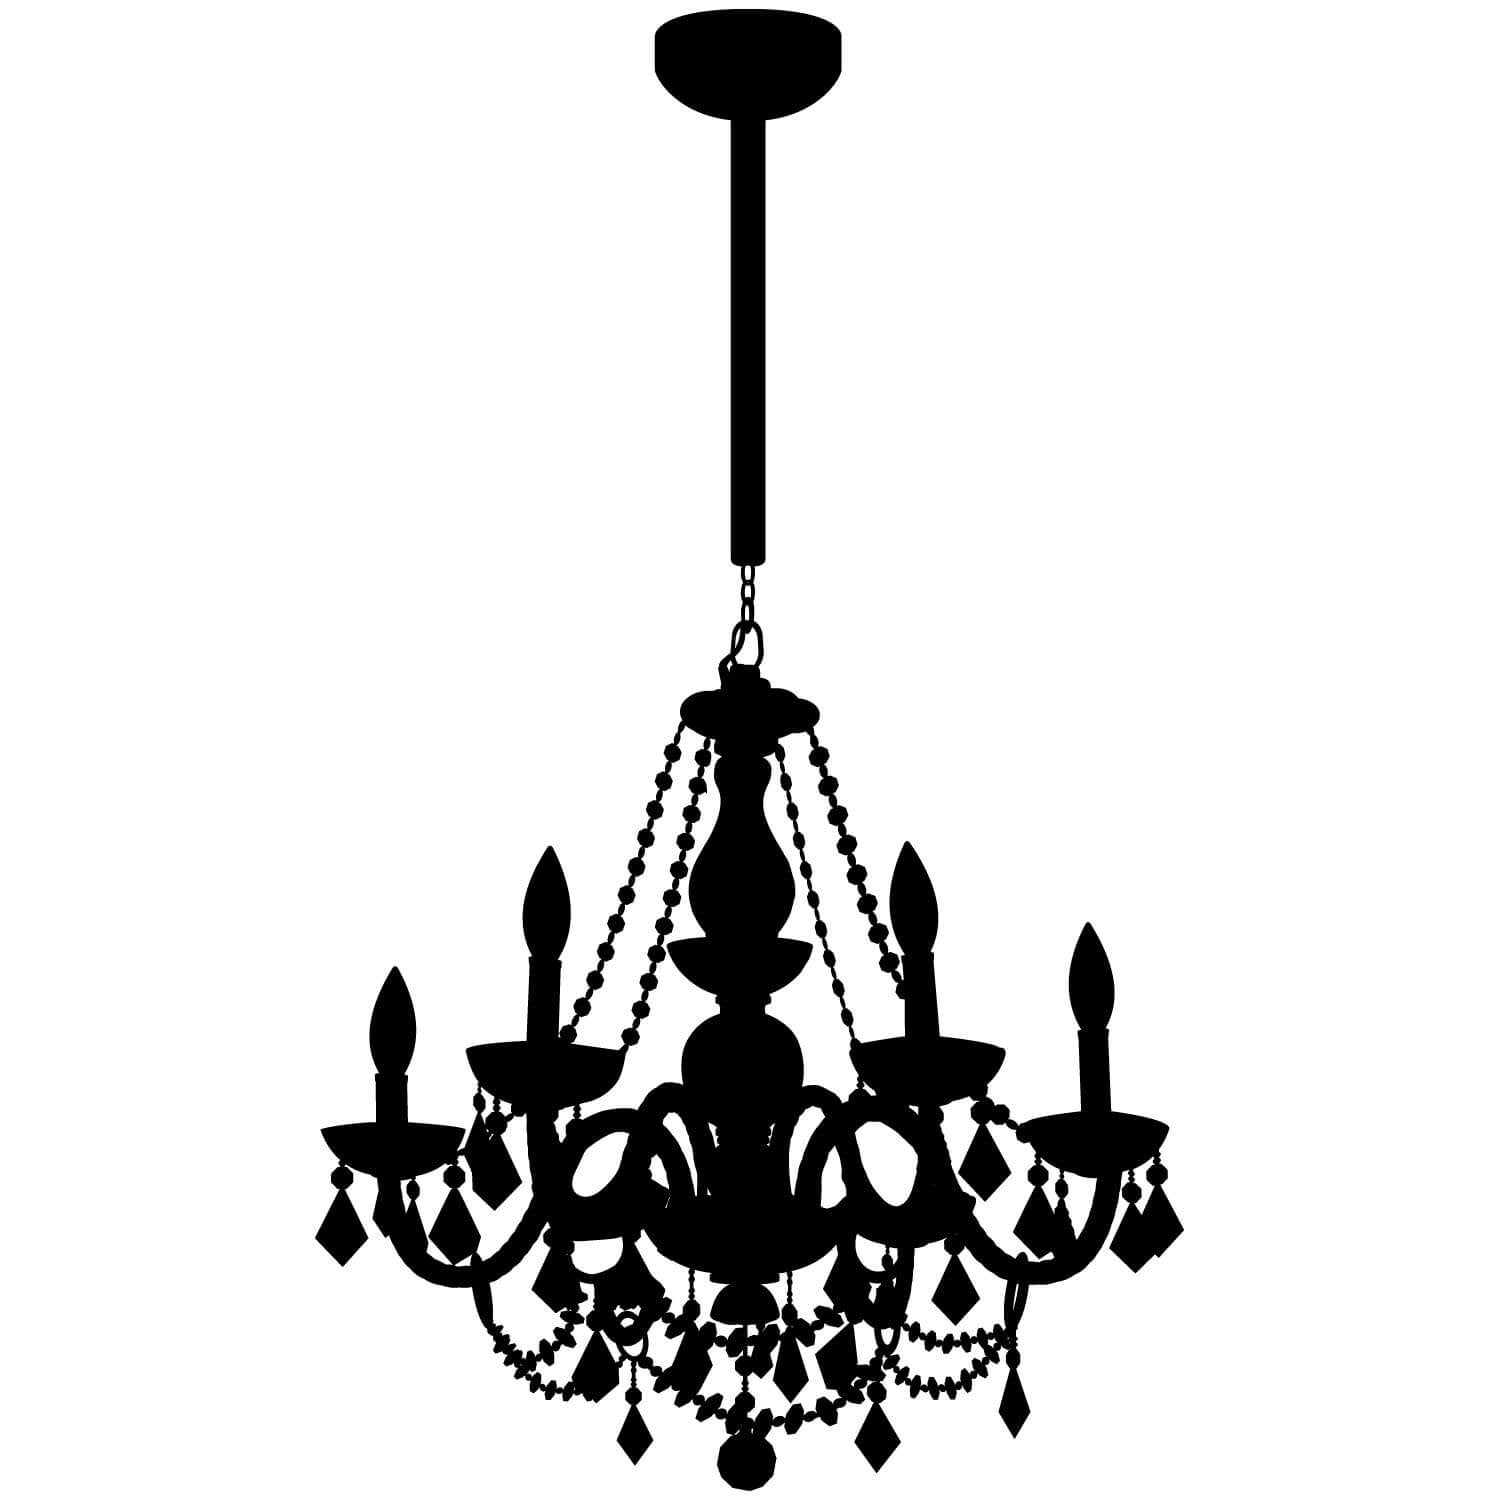 dorm wall decals room decals removable decals dormify chain chandelier decal